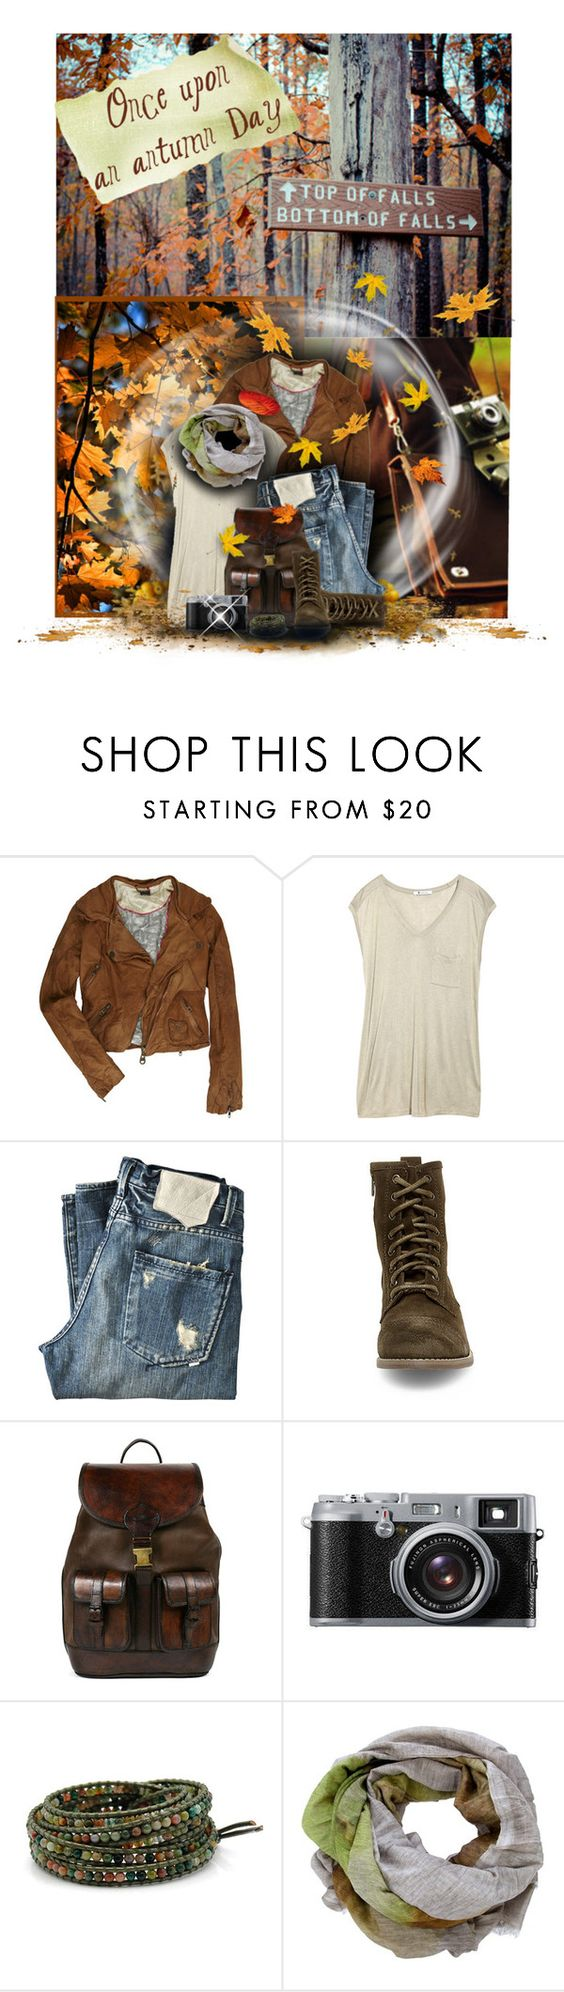 """Let's Go For A Hike..."" by cindycook10 ❤ liked on Polyvore featuring Doma, T By Alexander Wang, KING, Steve Madden, Beara Beara, Fujifilm, Chan Luu, Faliero Sarti and falloutfit"